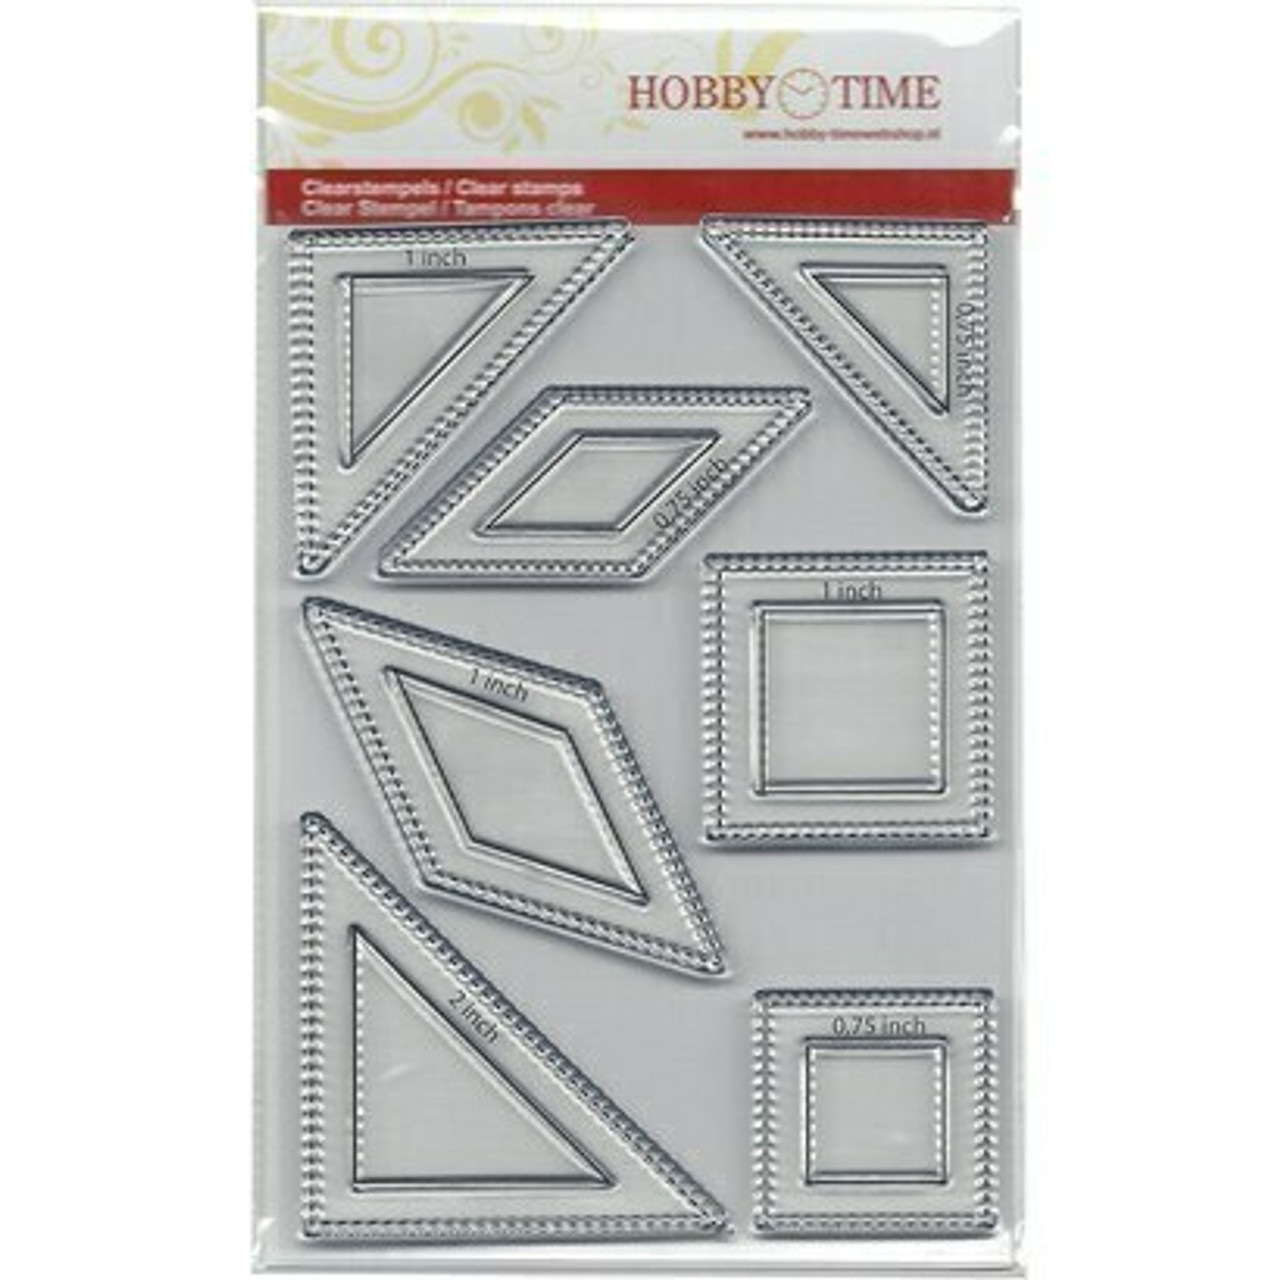 Hobby Time Le Moyne Star Stamp Set (Small)